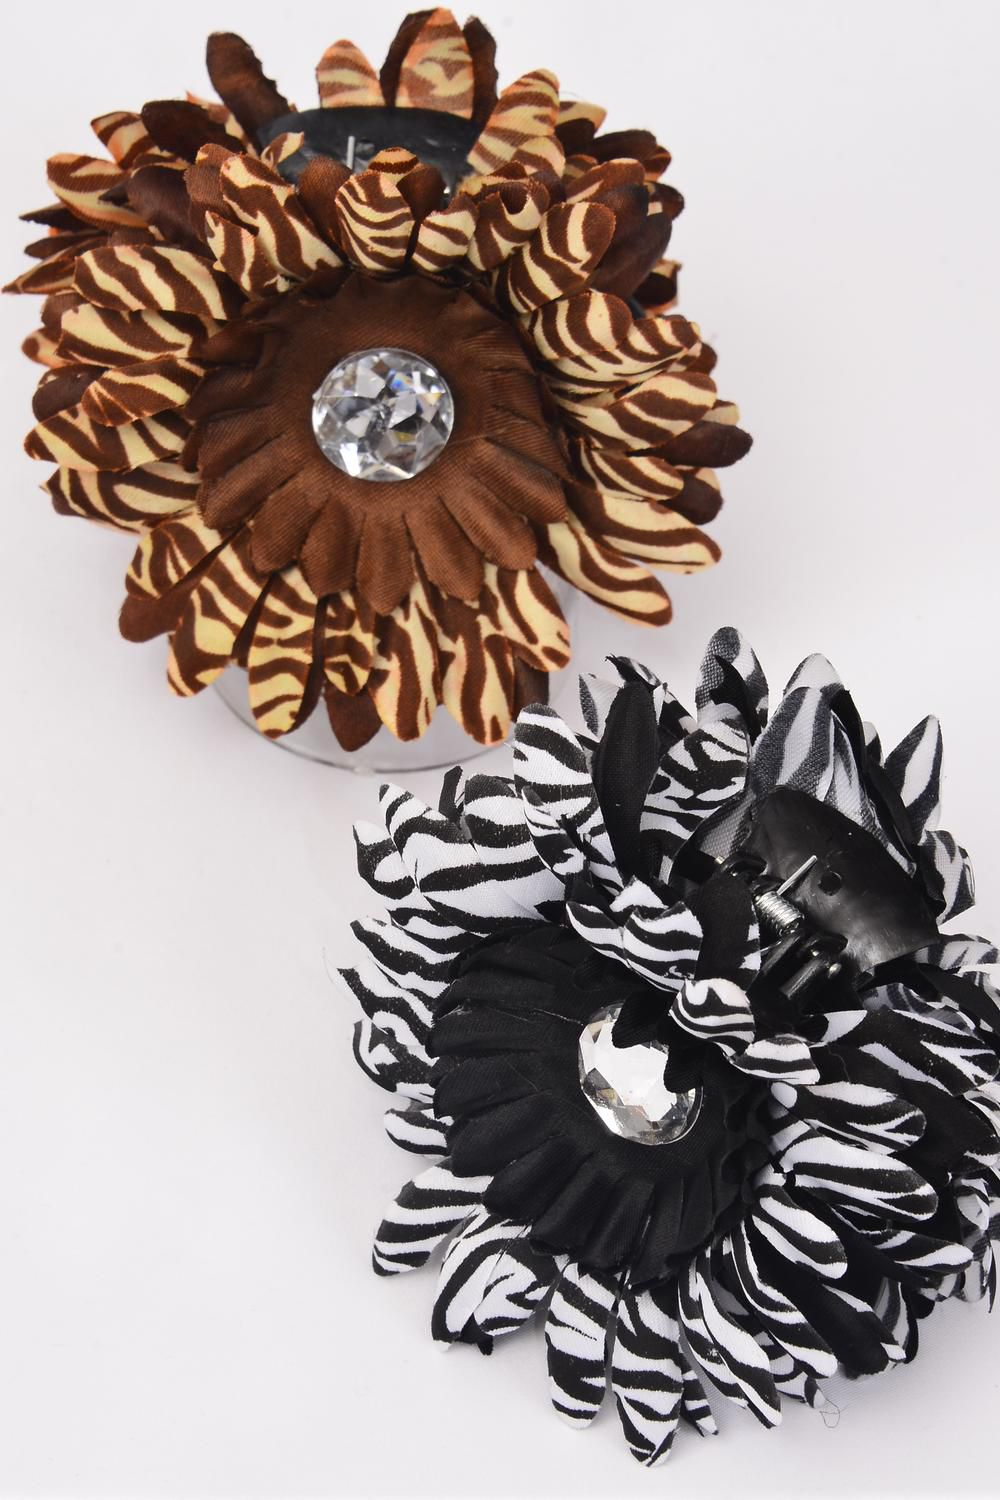 "Jaw Clip Flower Daisy Zebra Print Mix/DZ Size- Flower 4"" Wide,Jaw Clip-3.5"" Wide,8 Black & 4 brown Mix,hang Tag & UPC Code,W Clear box-"